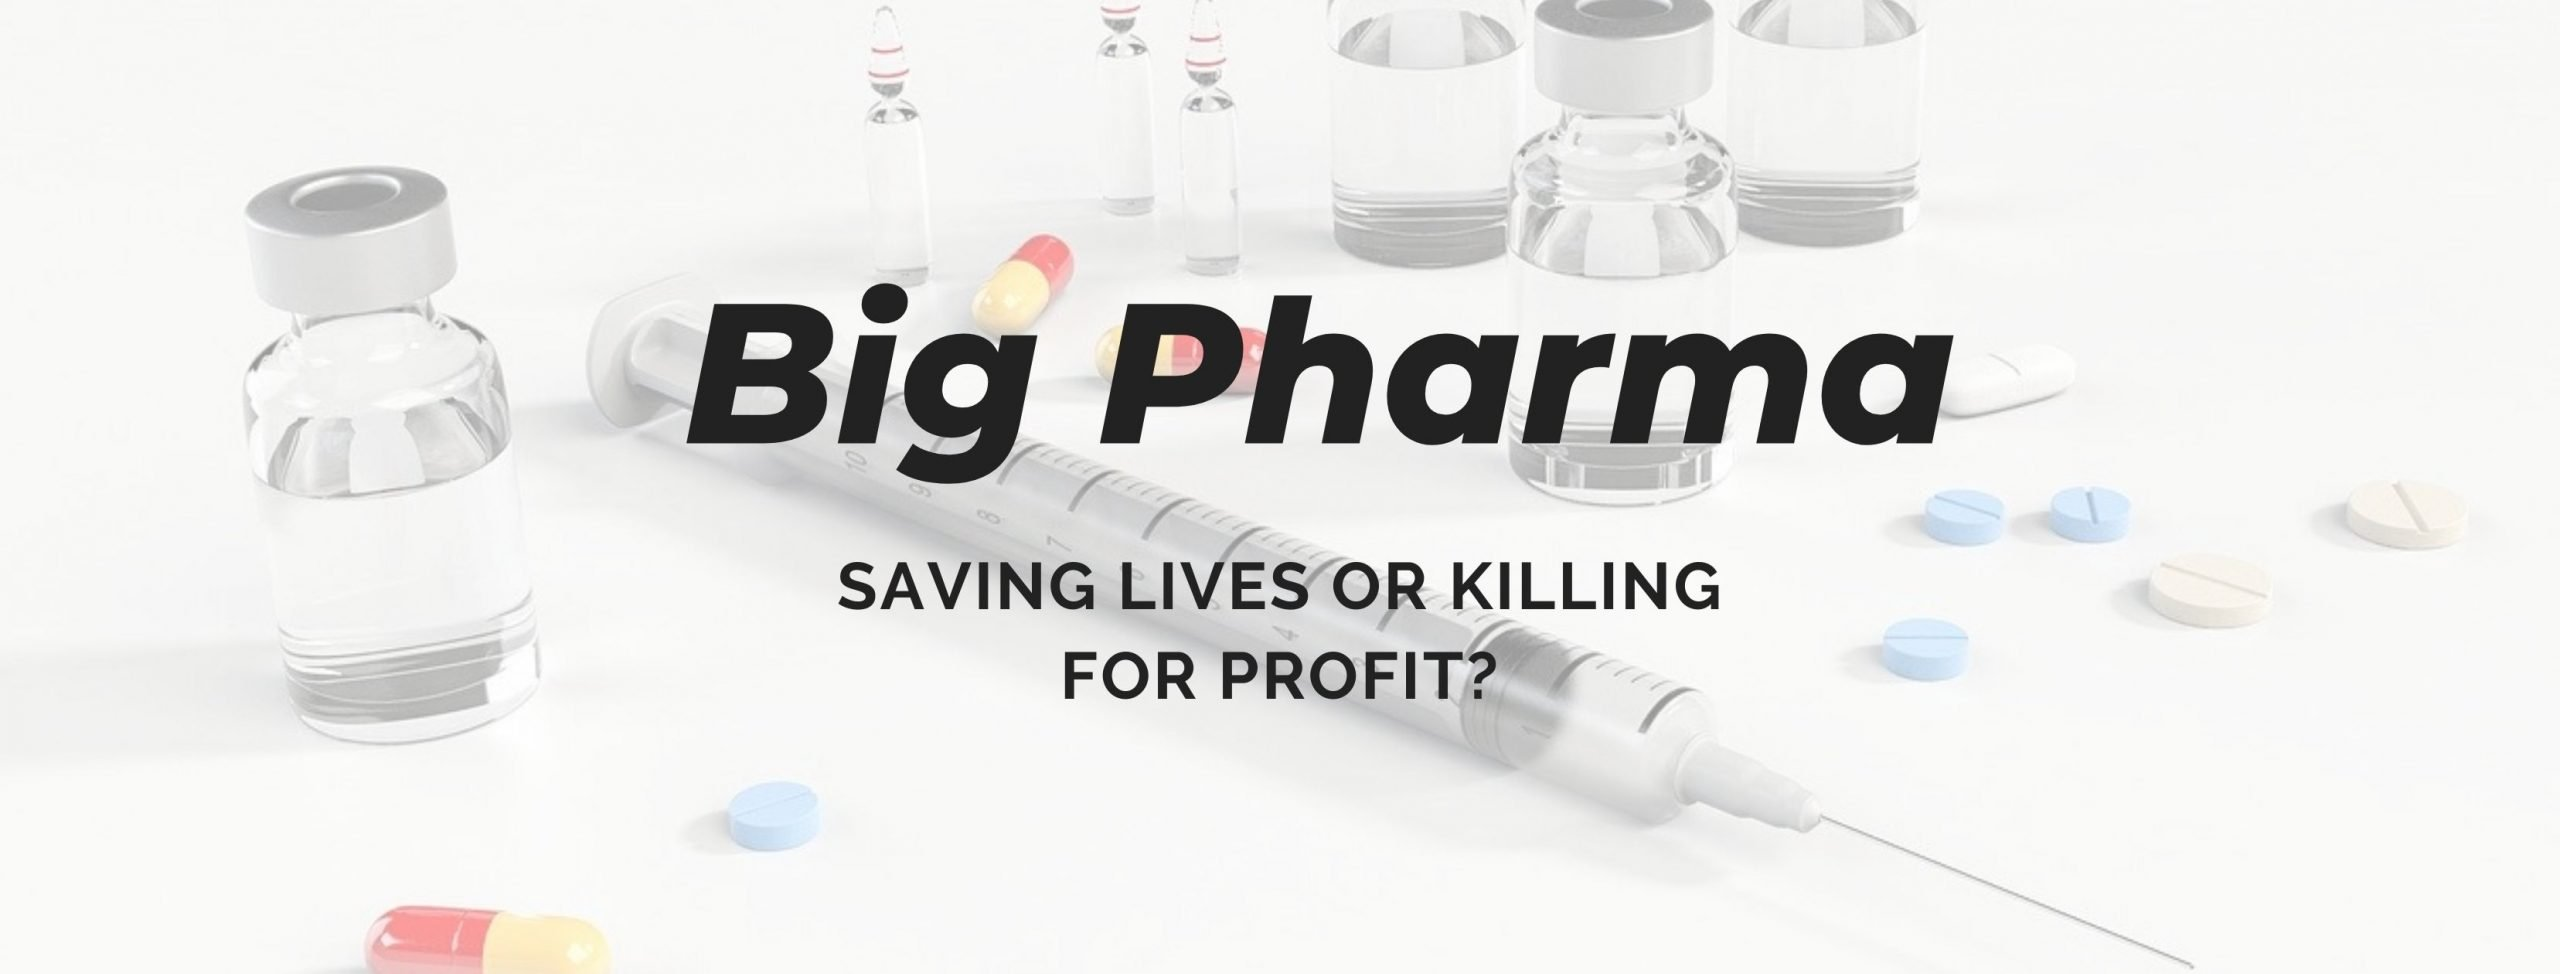 Big Pharma: Saving Lives or Killing for Profit?